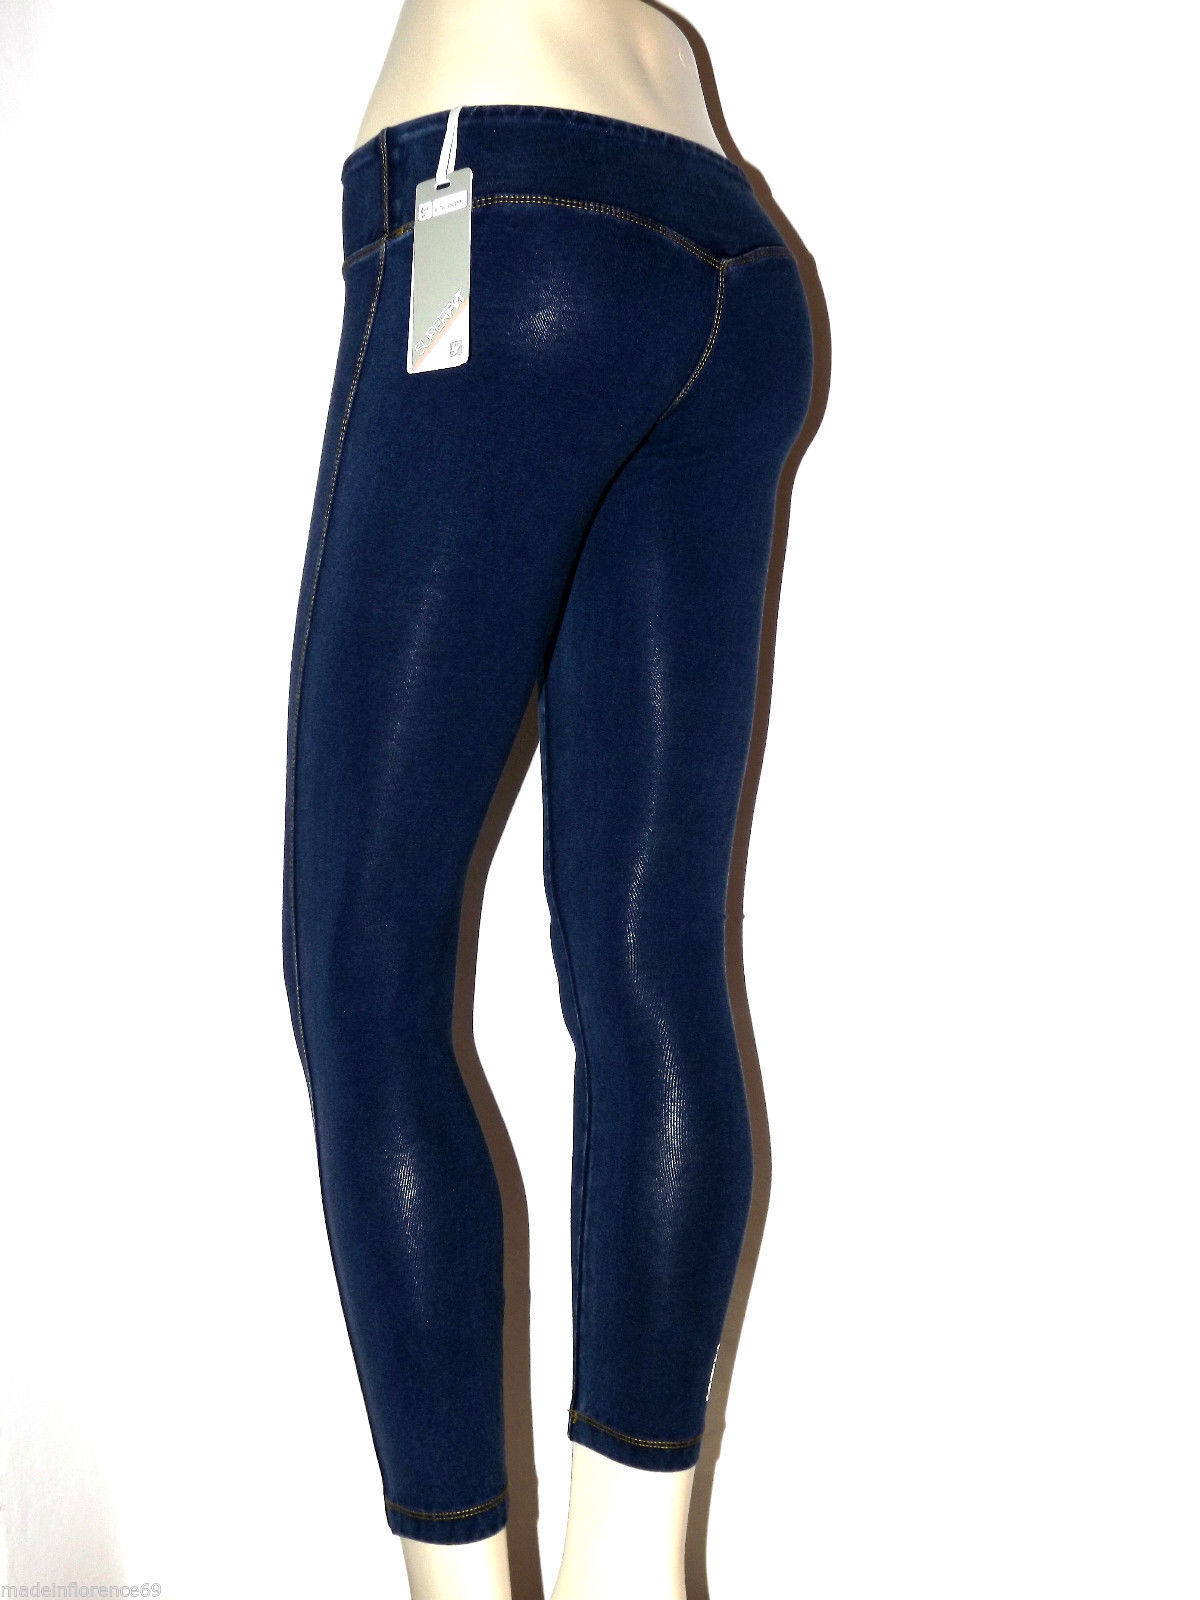 SCONTO 20% FREDDY PANTALONE 7/8 MODELLANTE XS S M L XL SUPERFIT S6SFI7A LEGGINGS